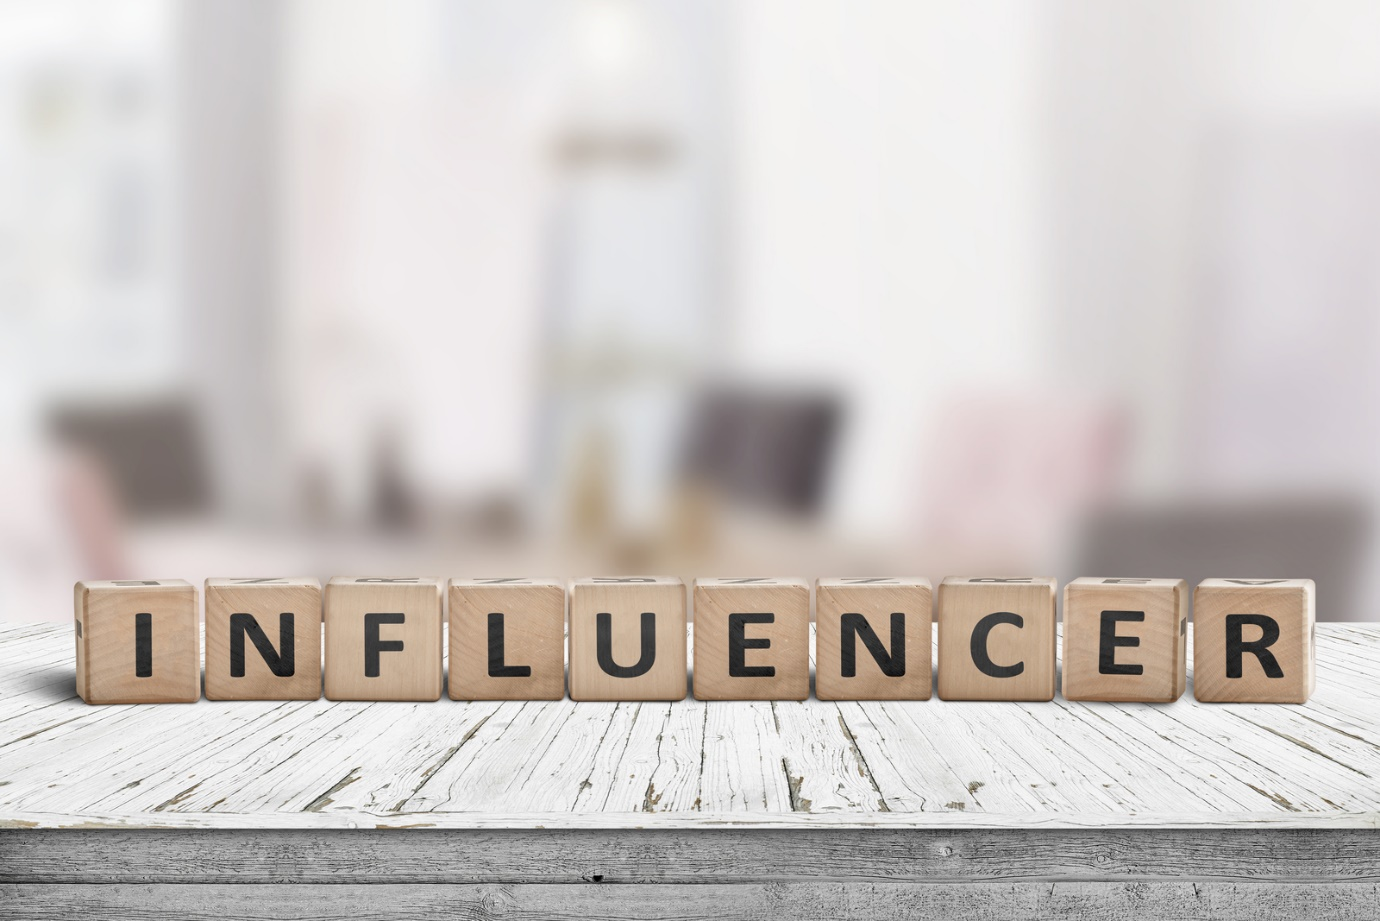 Personal Branding: Videos and Influencers